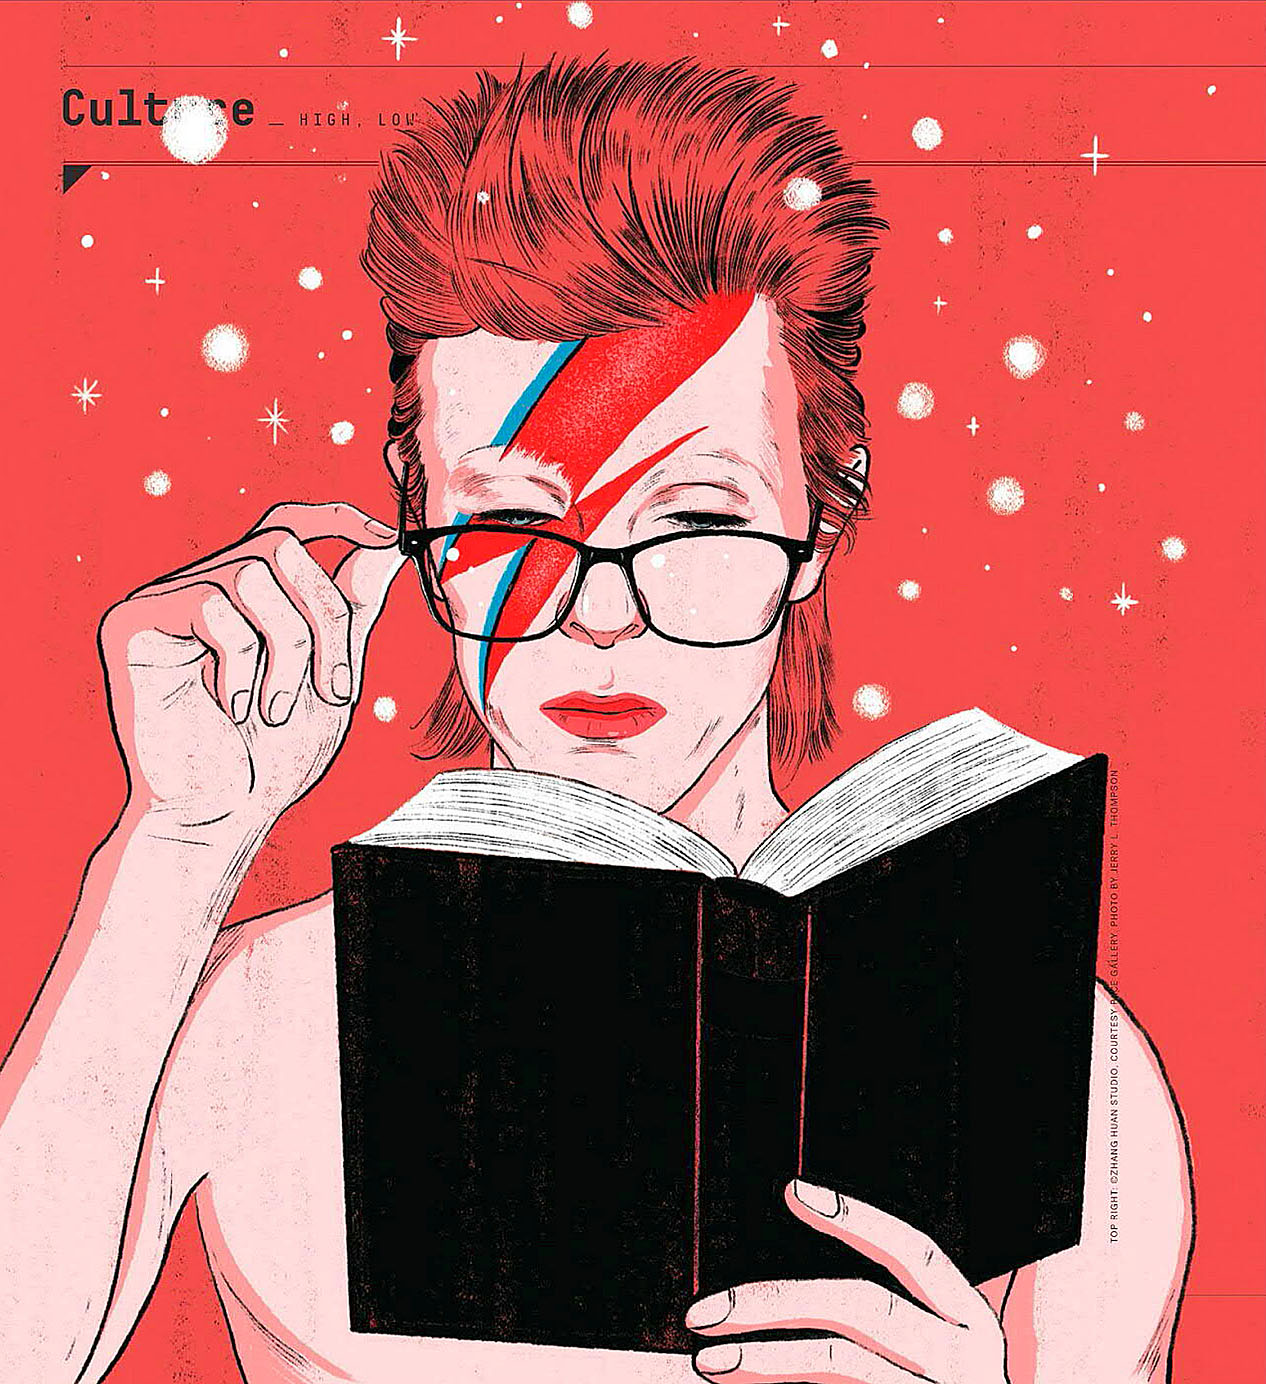 Bowie with book.jpg